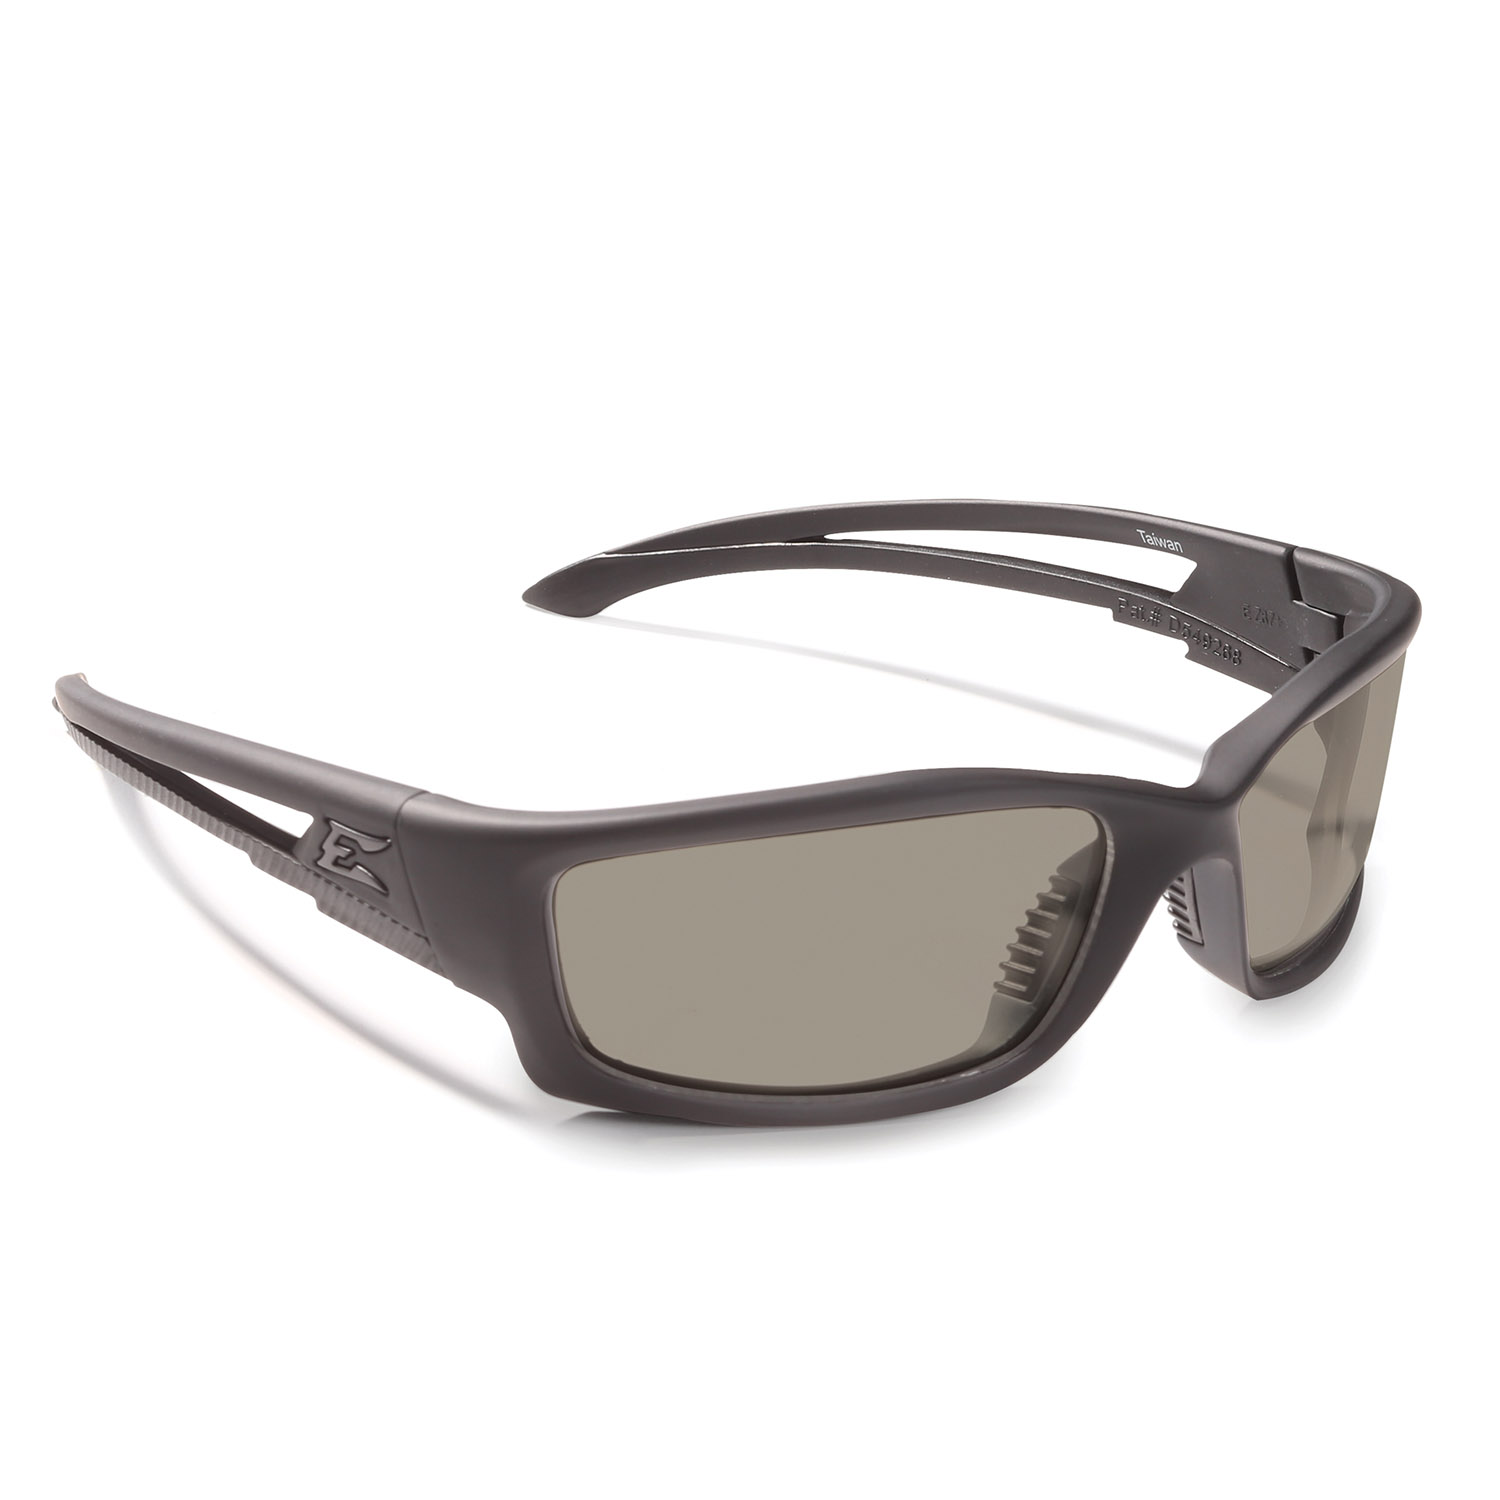 Edge Eyewear Bladerunner Glasses